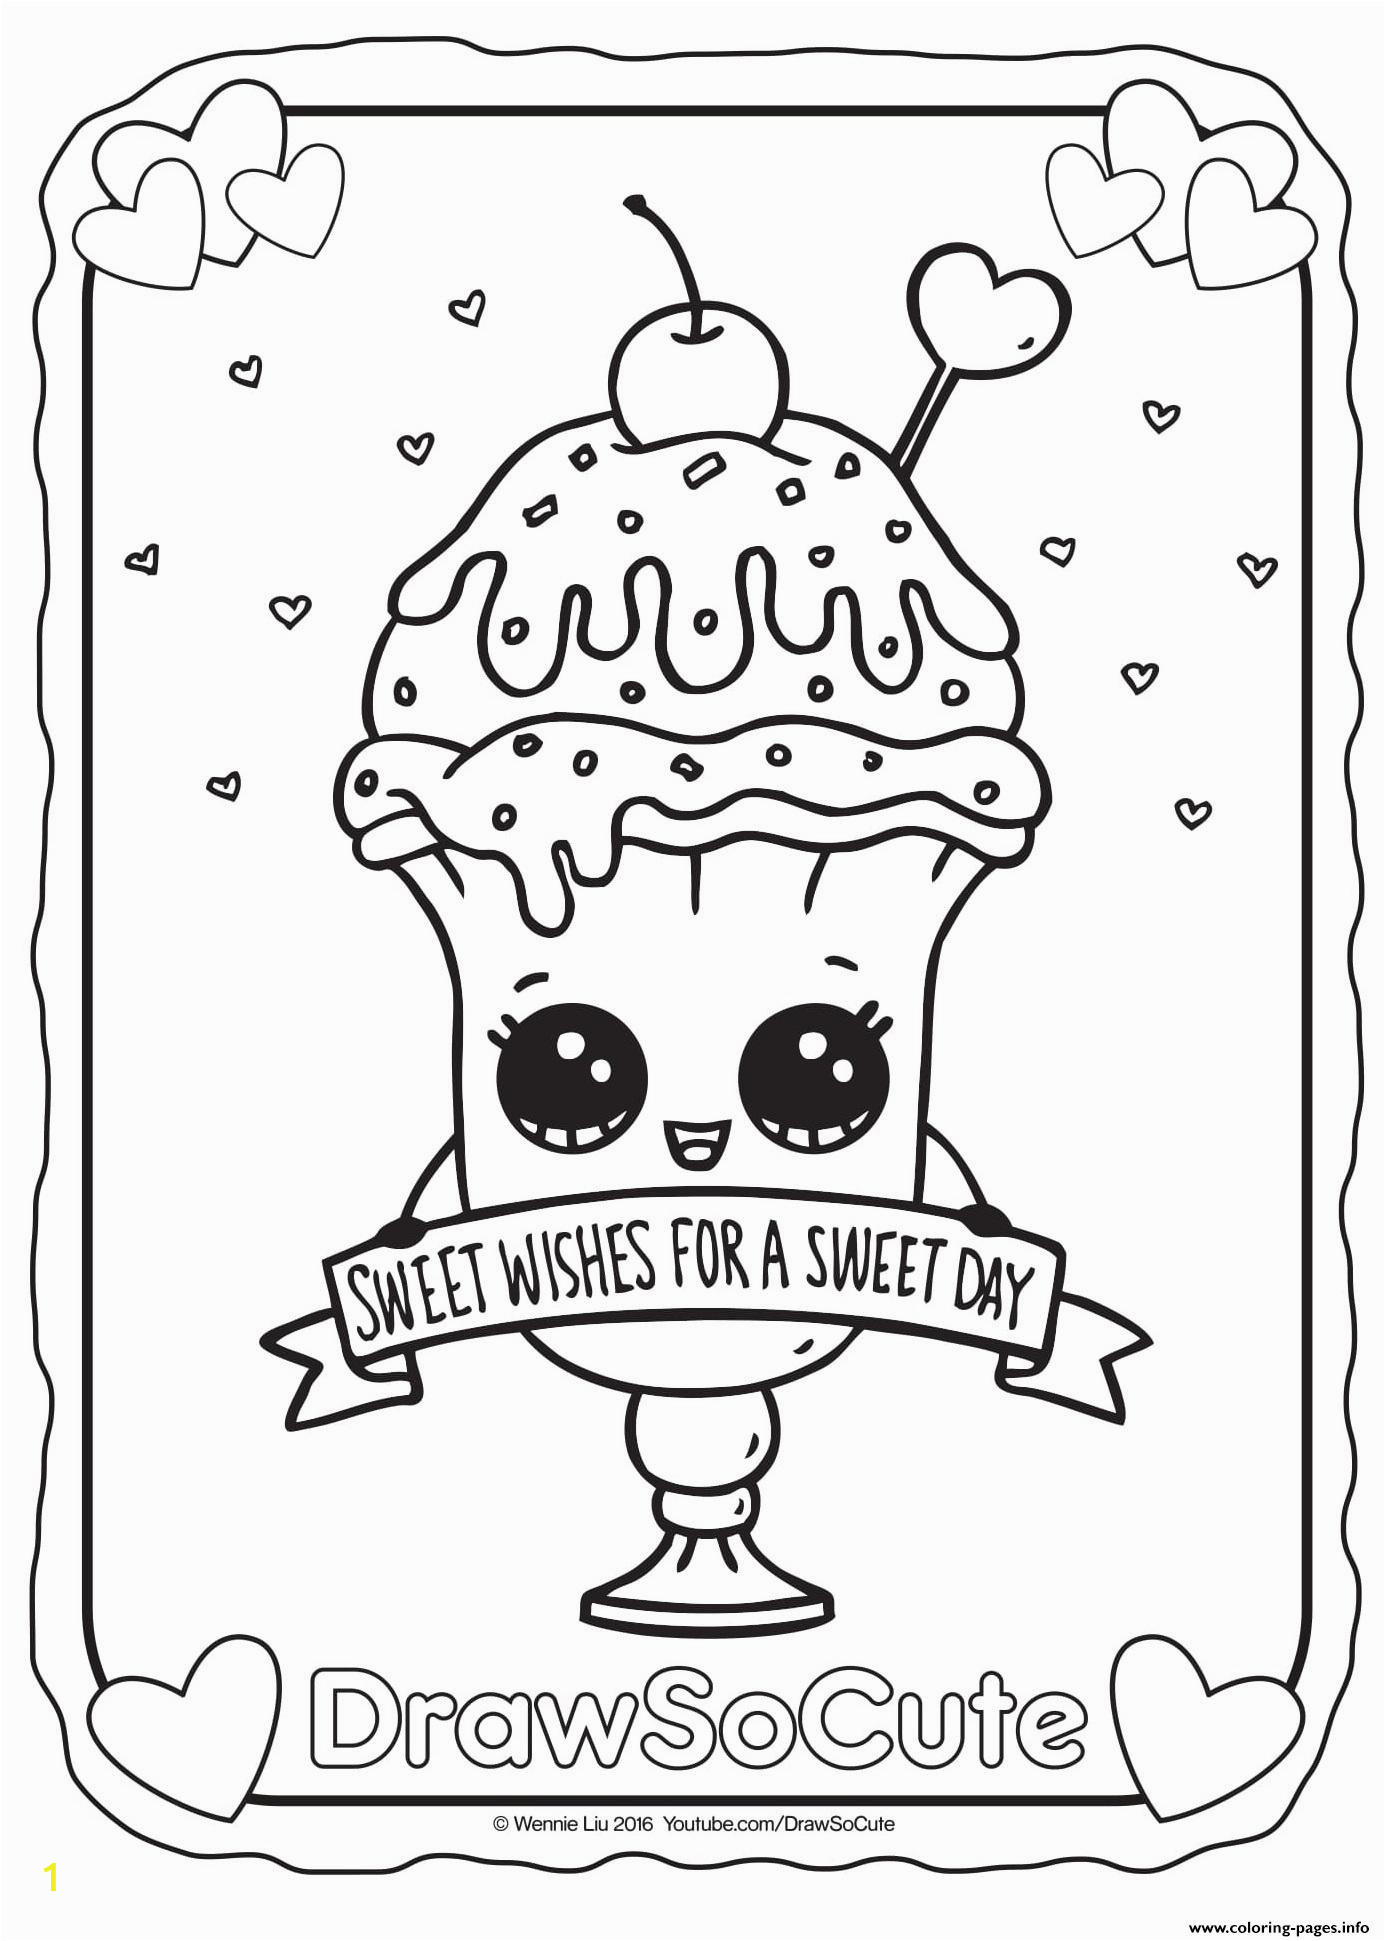 naturalod coloring free pictures to printr kids printable cornucopia fruit cute